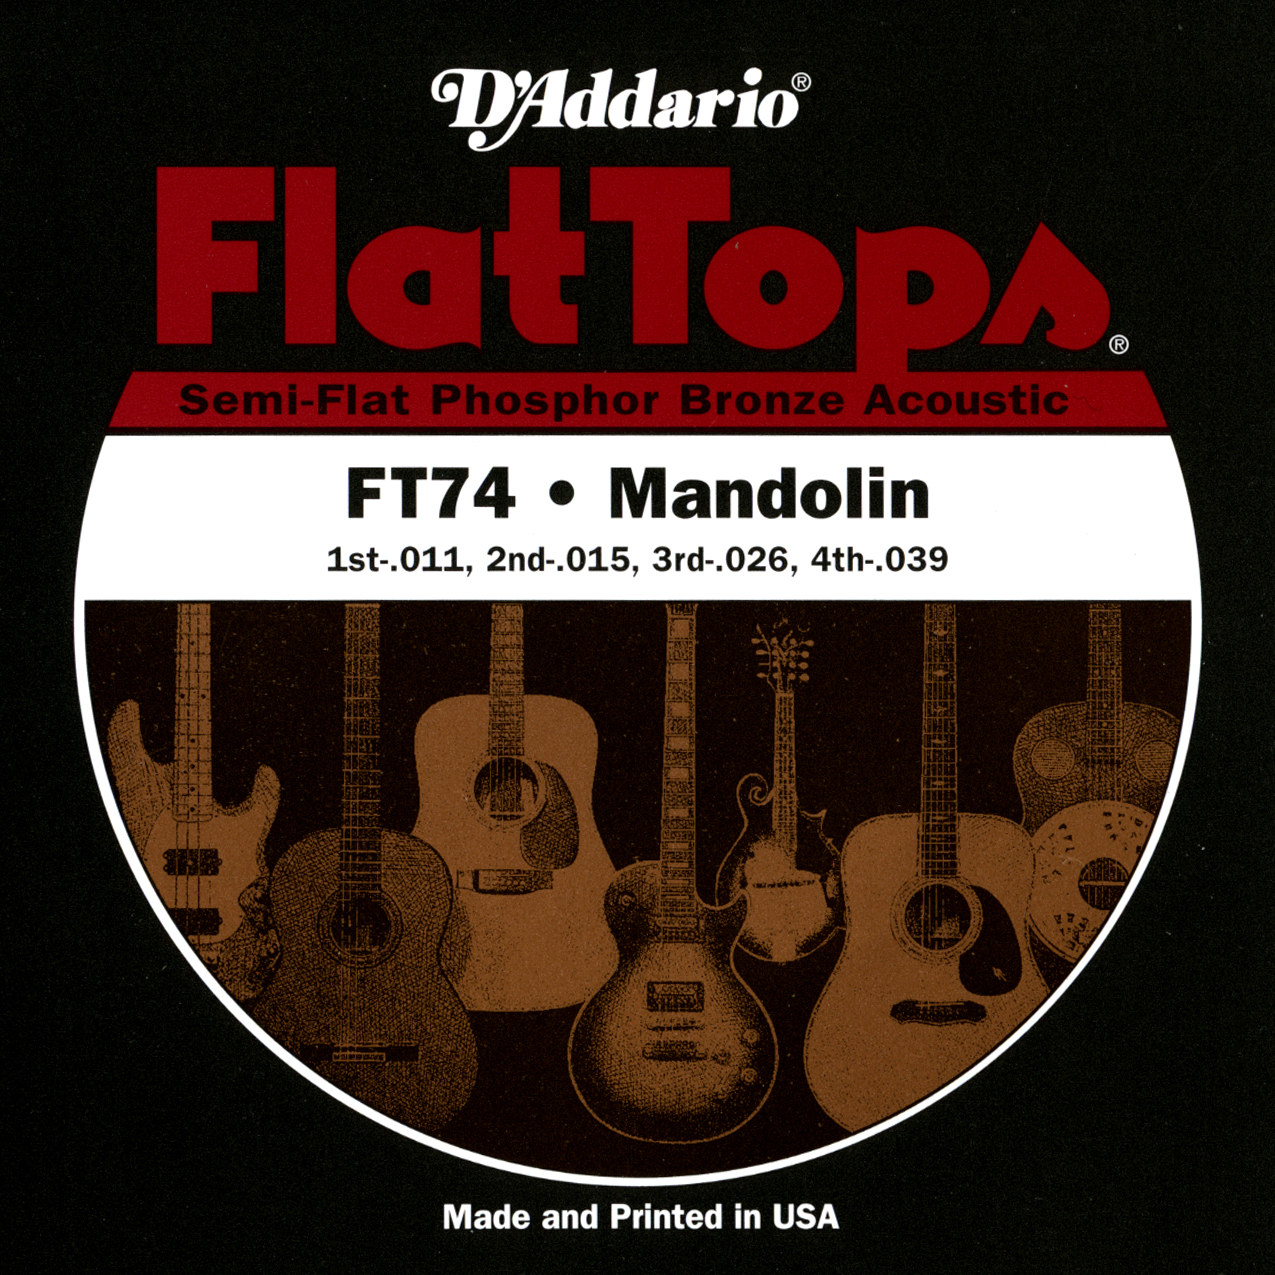 D'Addario FT74 Flat Tops Mandolin Strings, Medium, 11-39